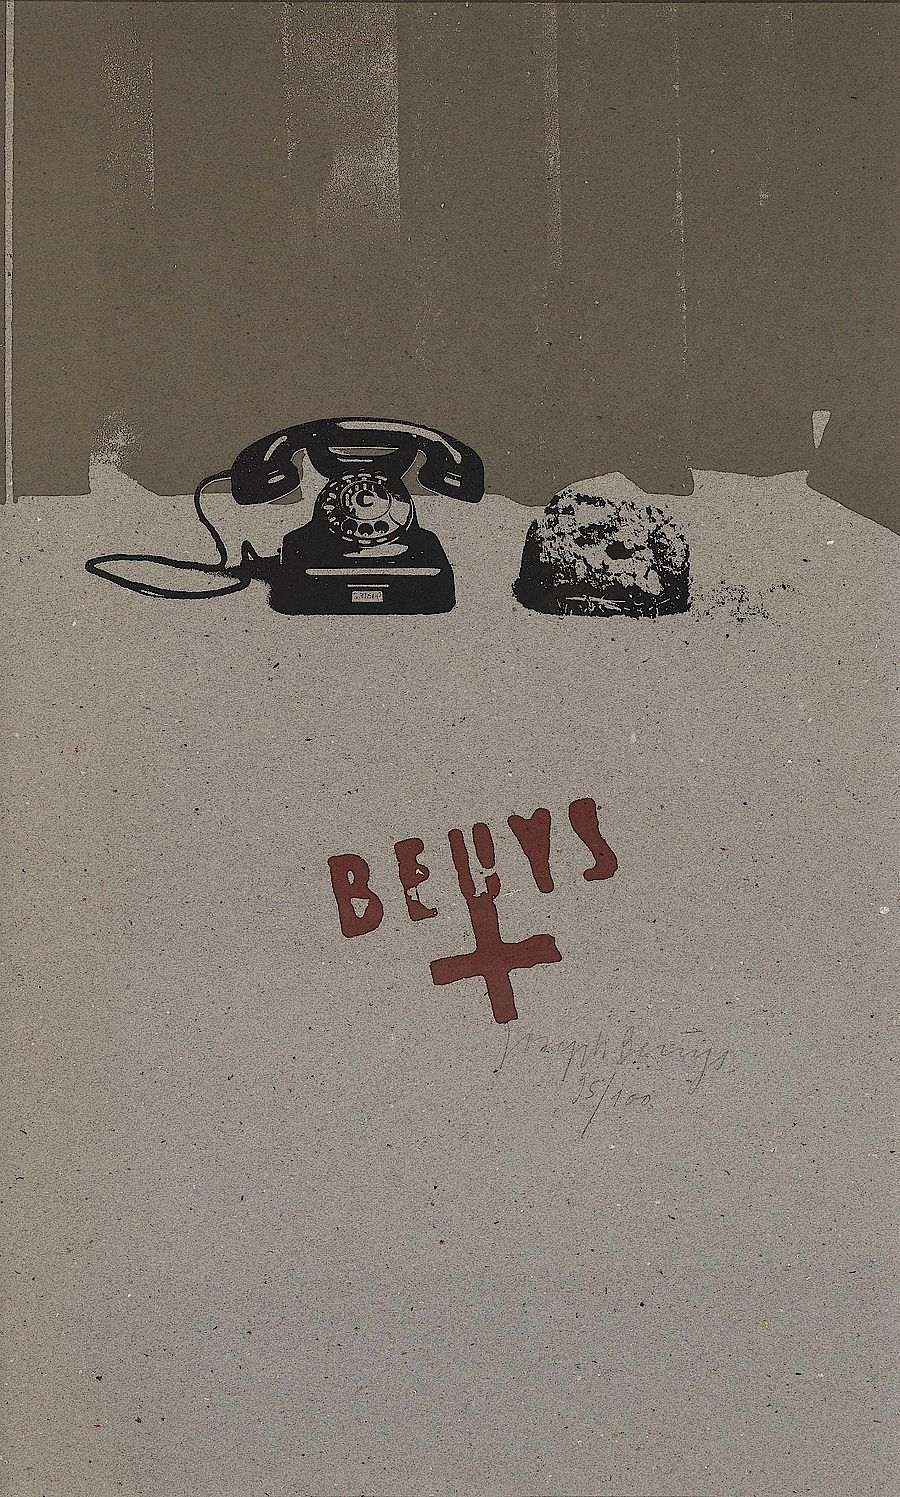 Korff Stiftung - Joseph Beuys - Graphics - Erdtelephon